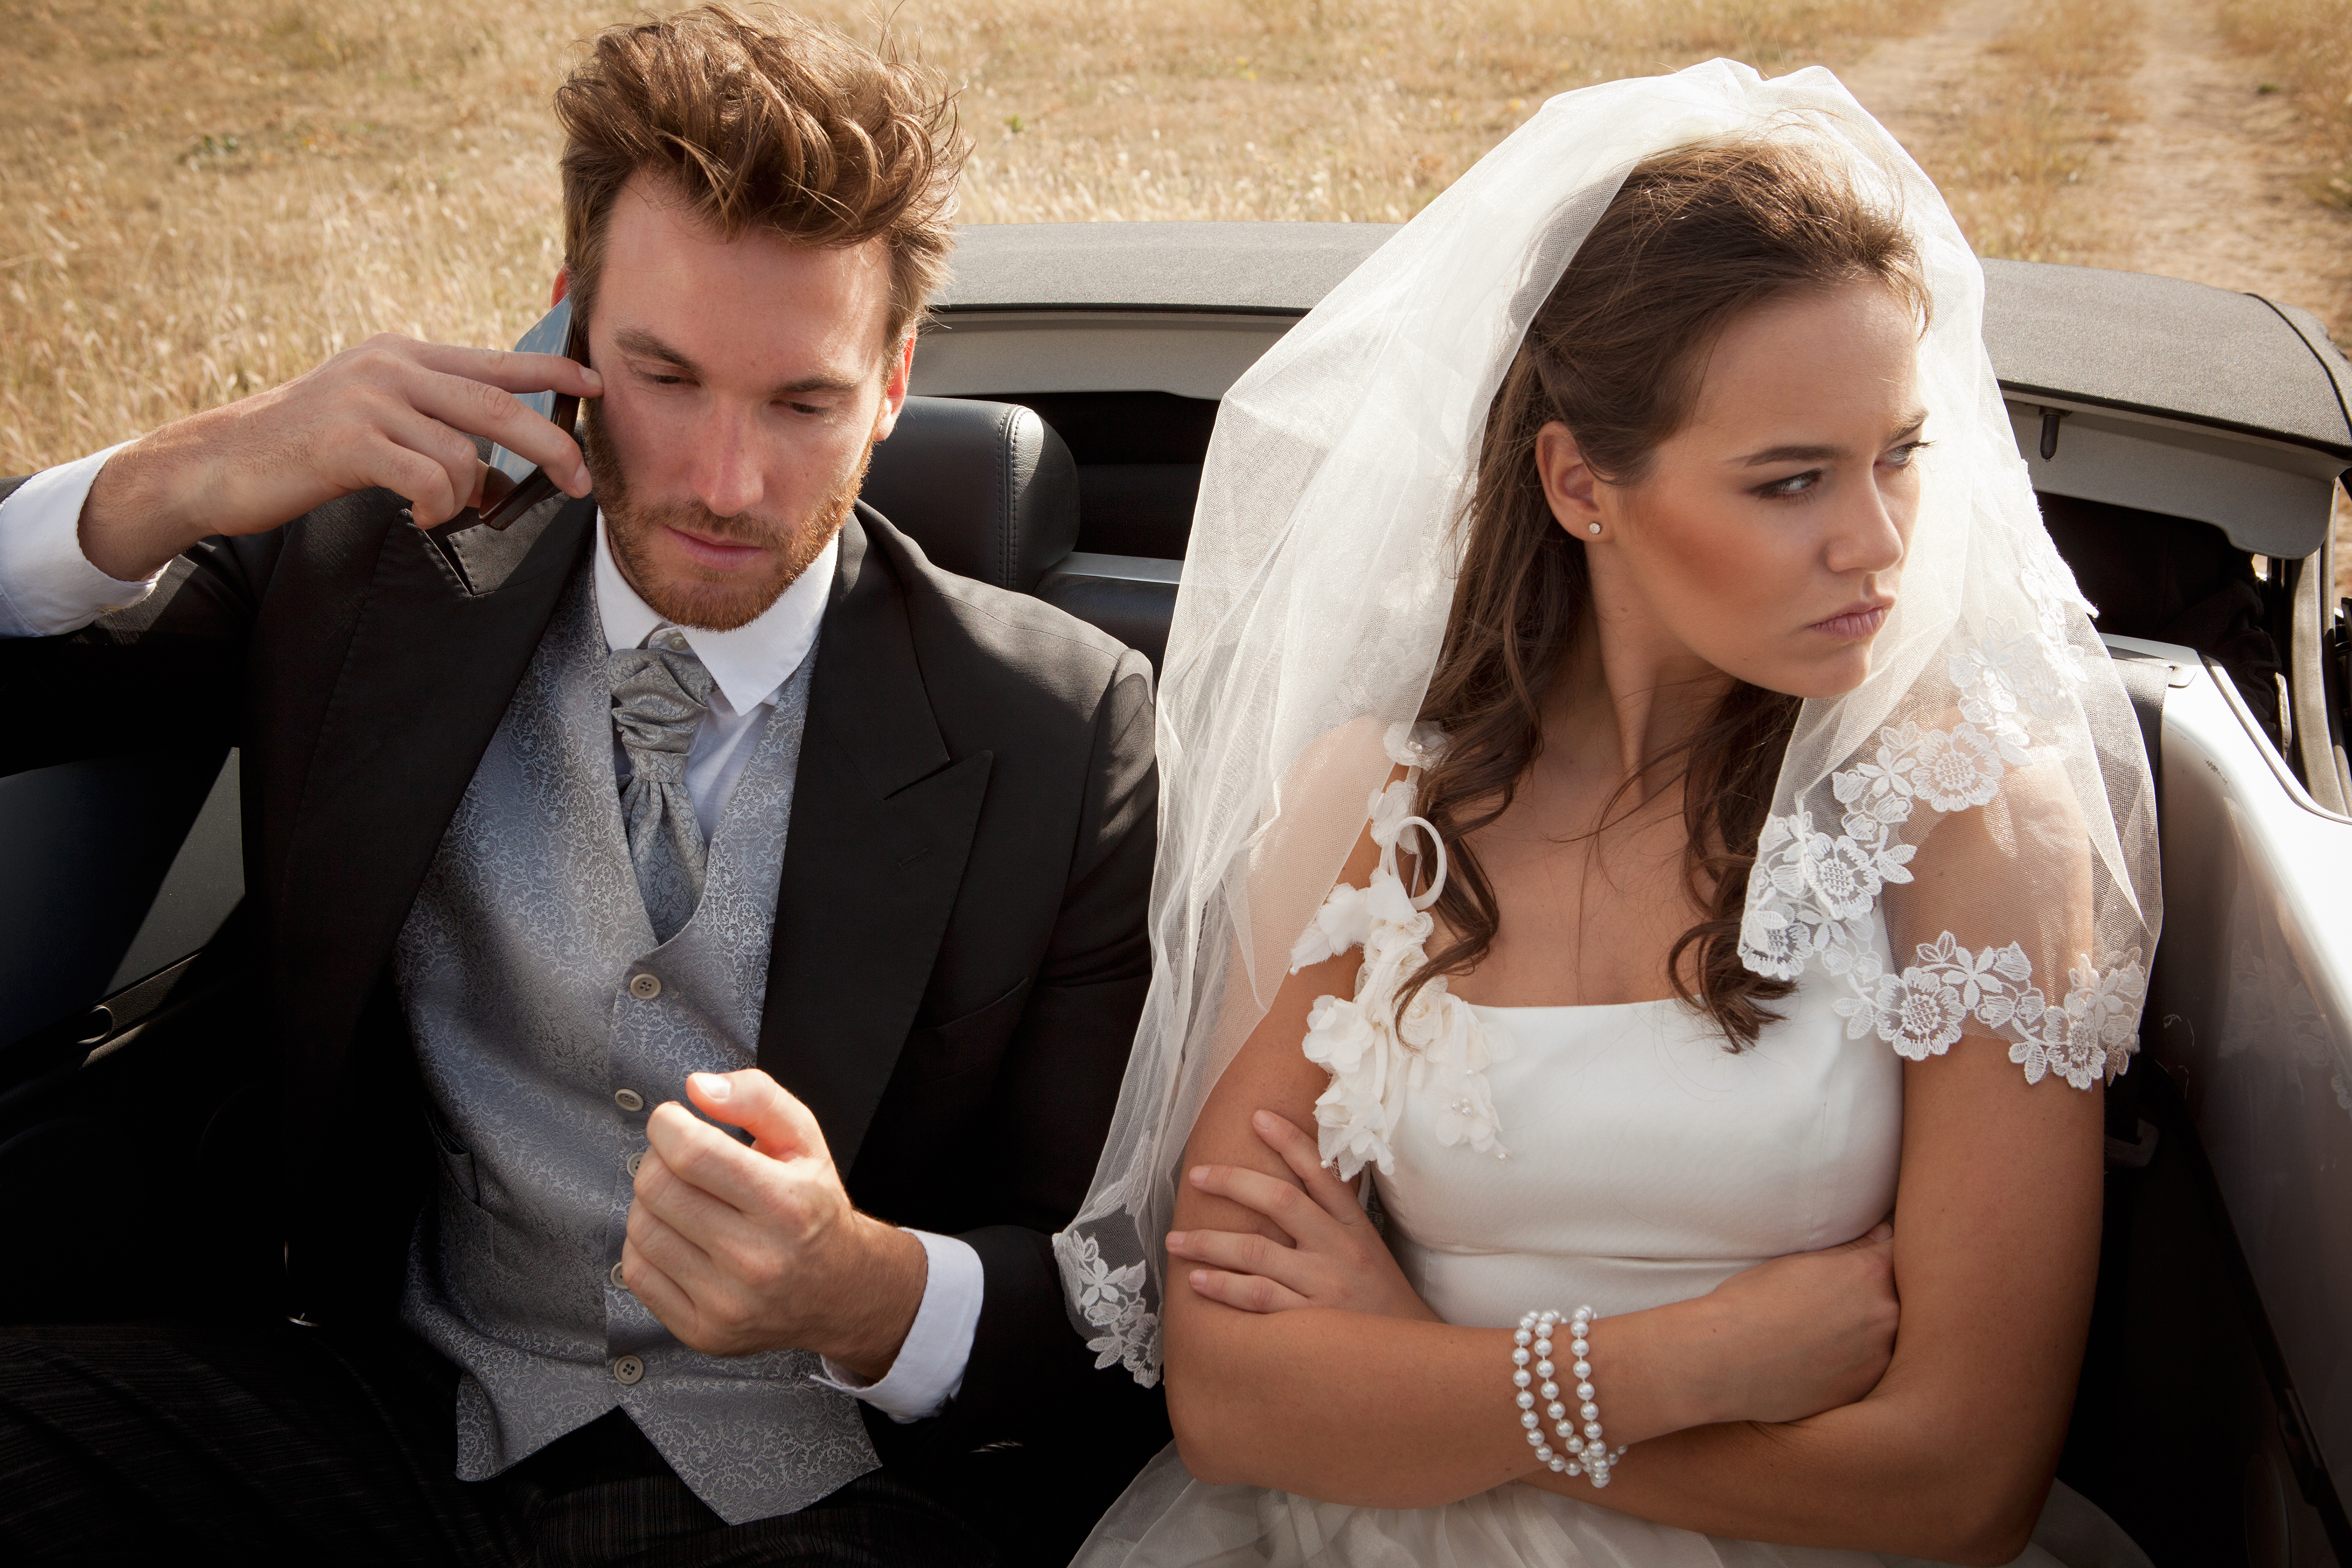 This is why July has been called an unlucky month for weddings